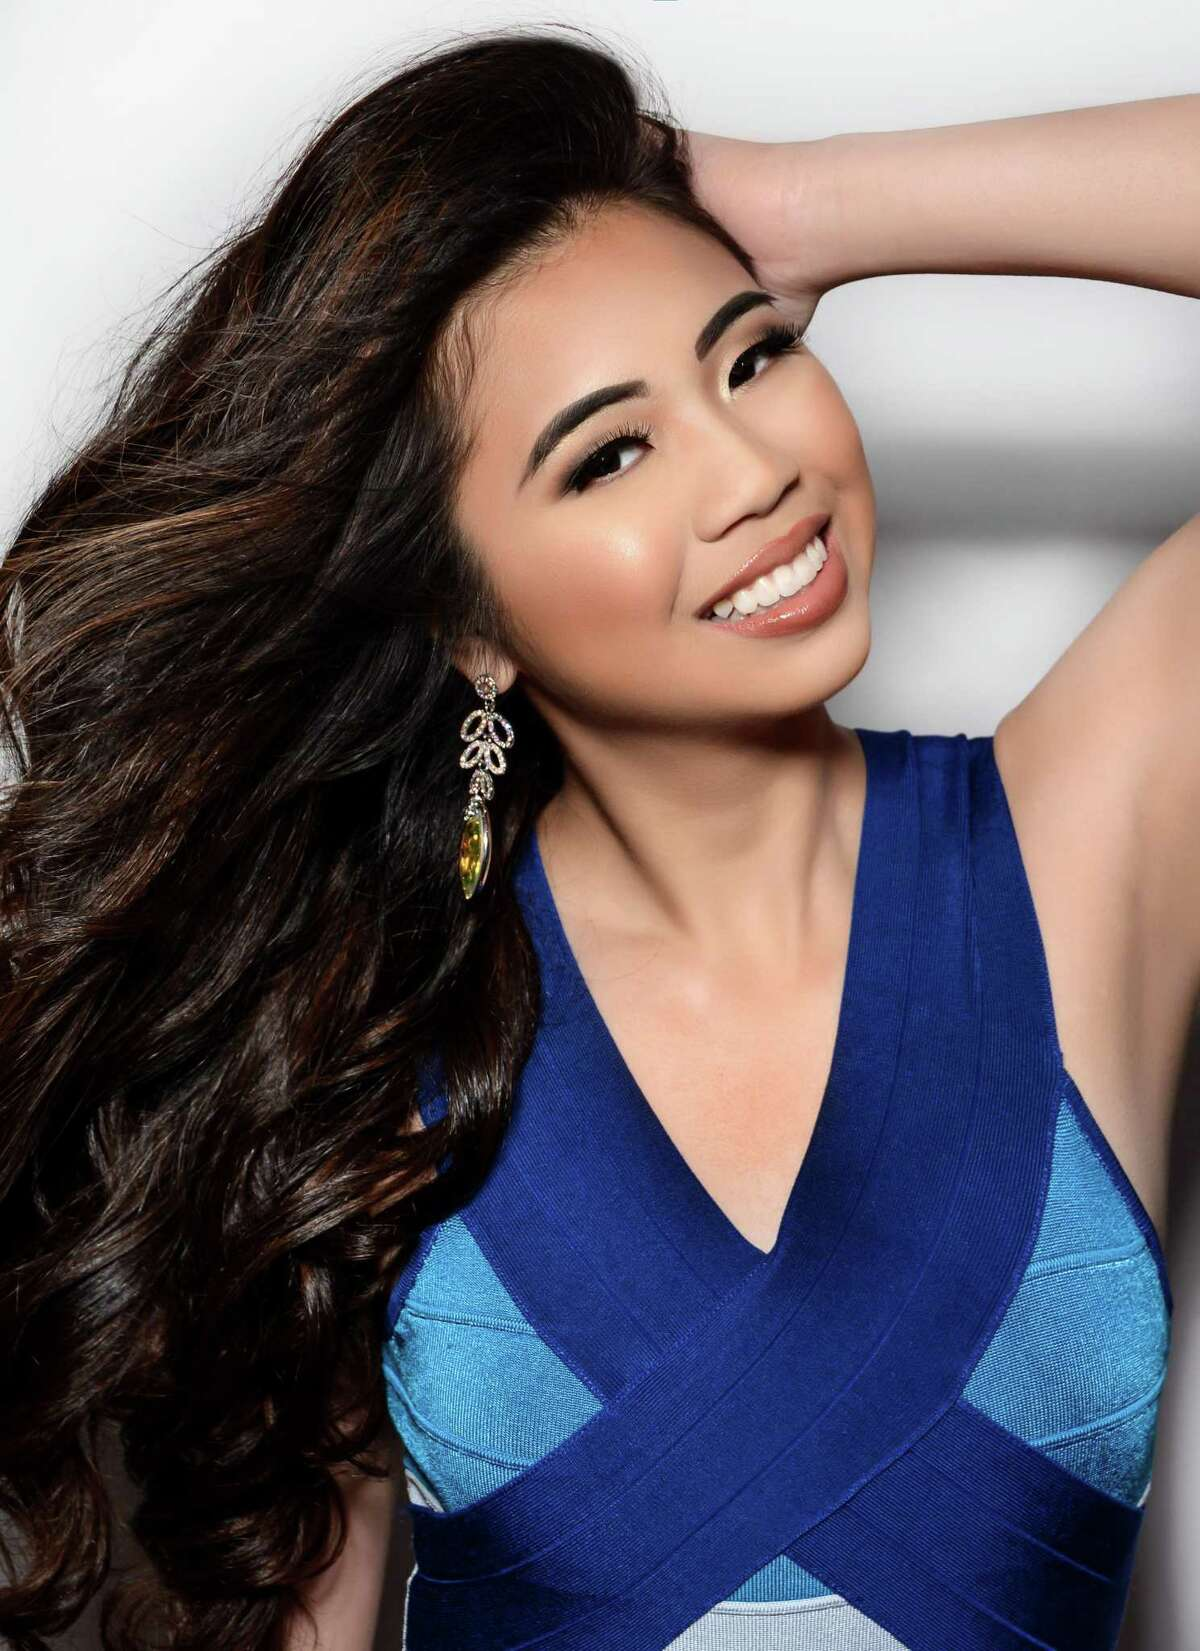 Tiffany Dimaano, who had represented Clear Lake when she placed in the Top 15 at the 2014 Miss Texas' Outstanding Teen pageant, will compete July 3 for a $20,000 scholarship as Miss Houston Volunteer in the first Miss Texas Volunteer pageant.